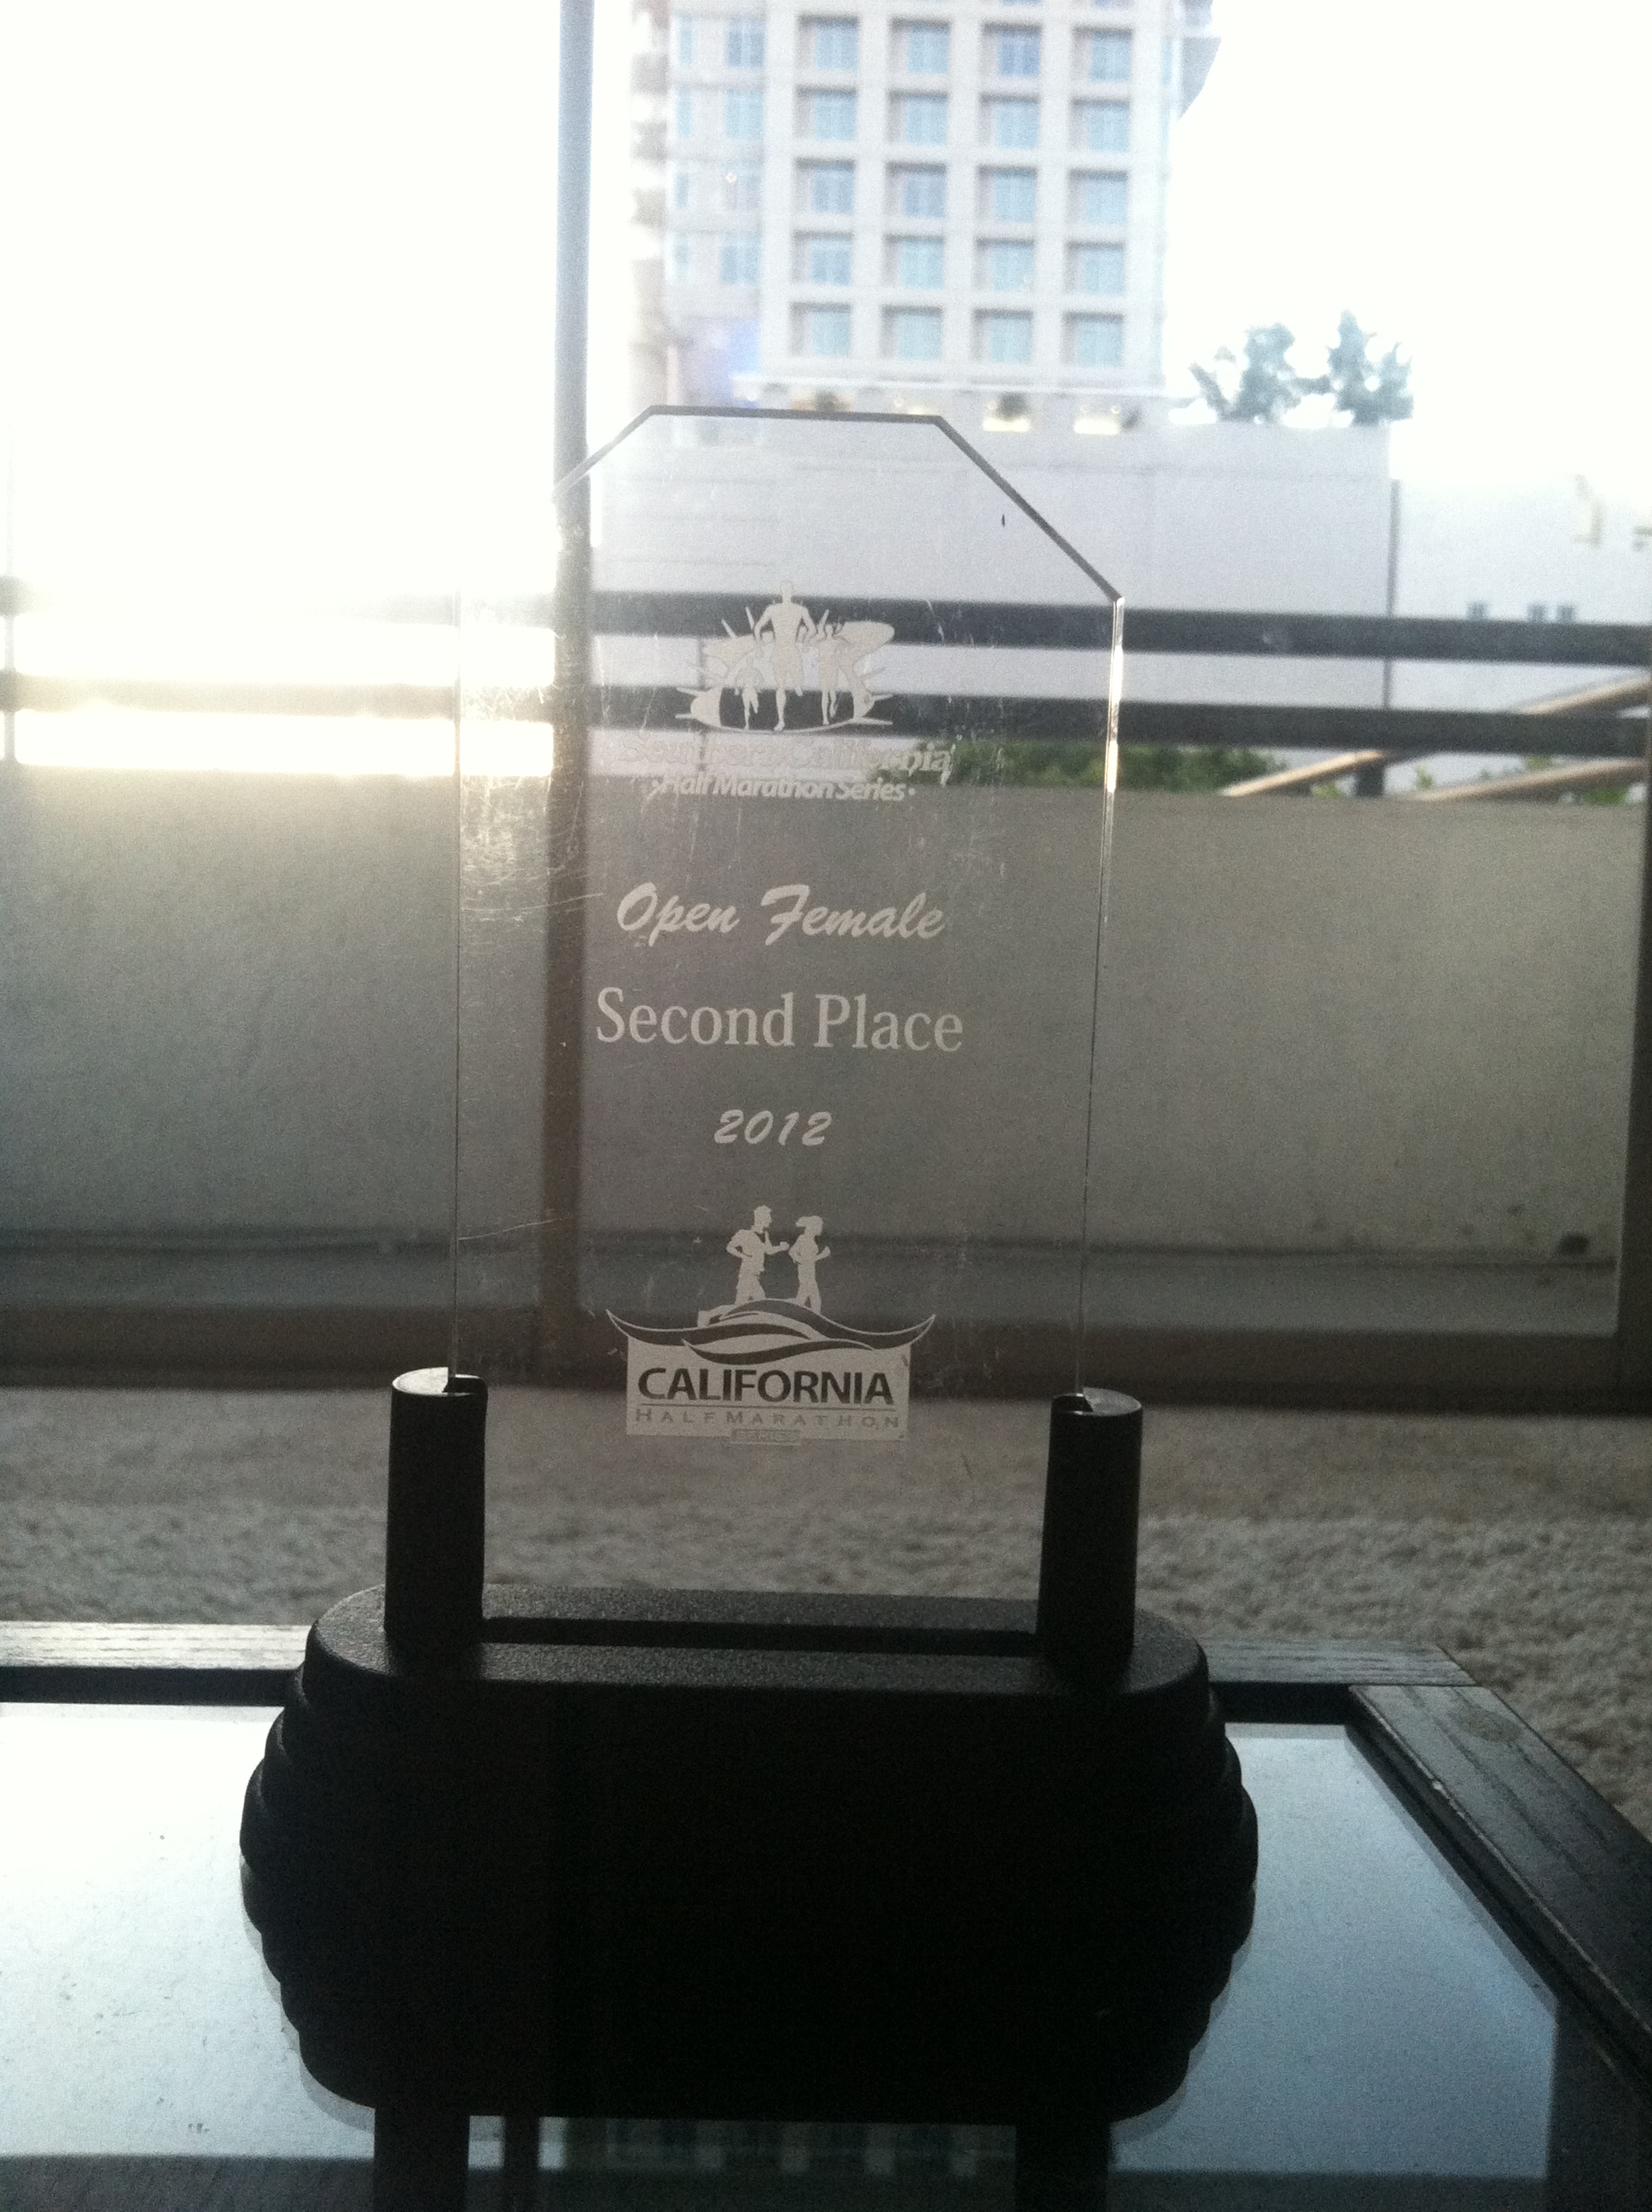 So Cal open female 2nd place